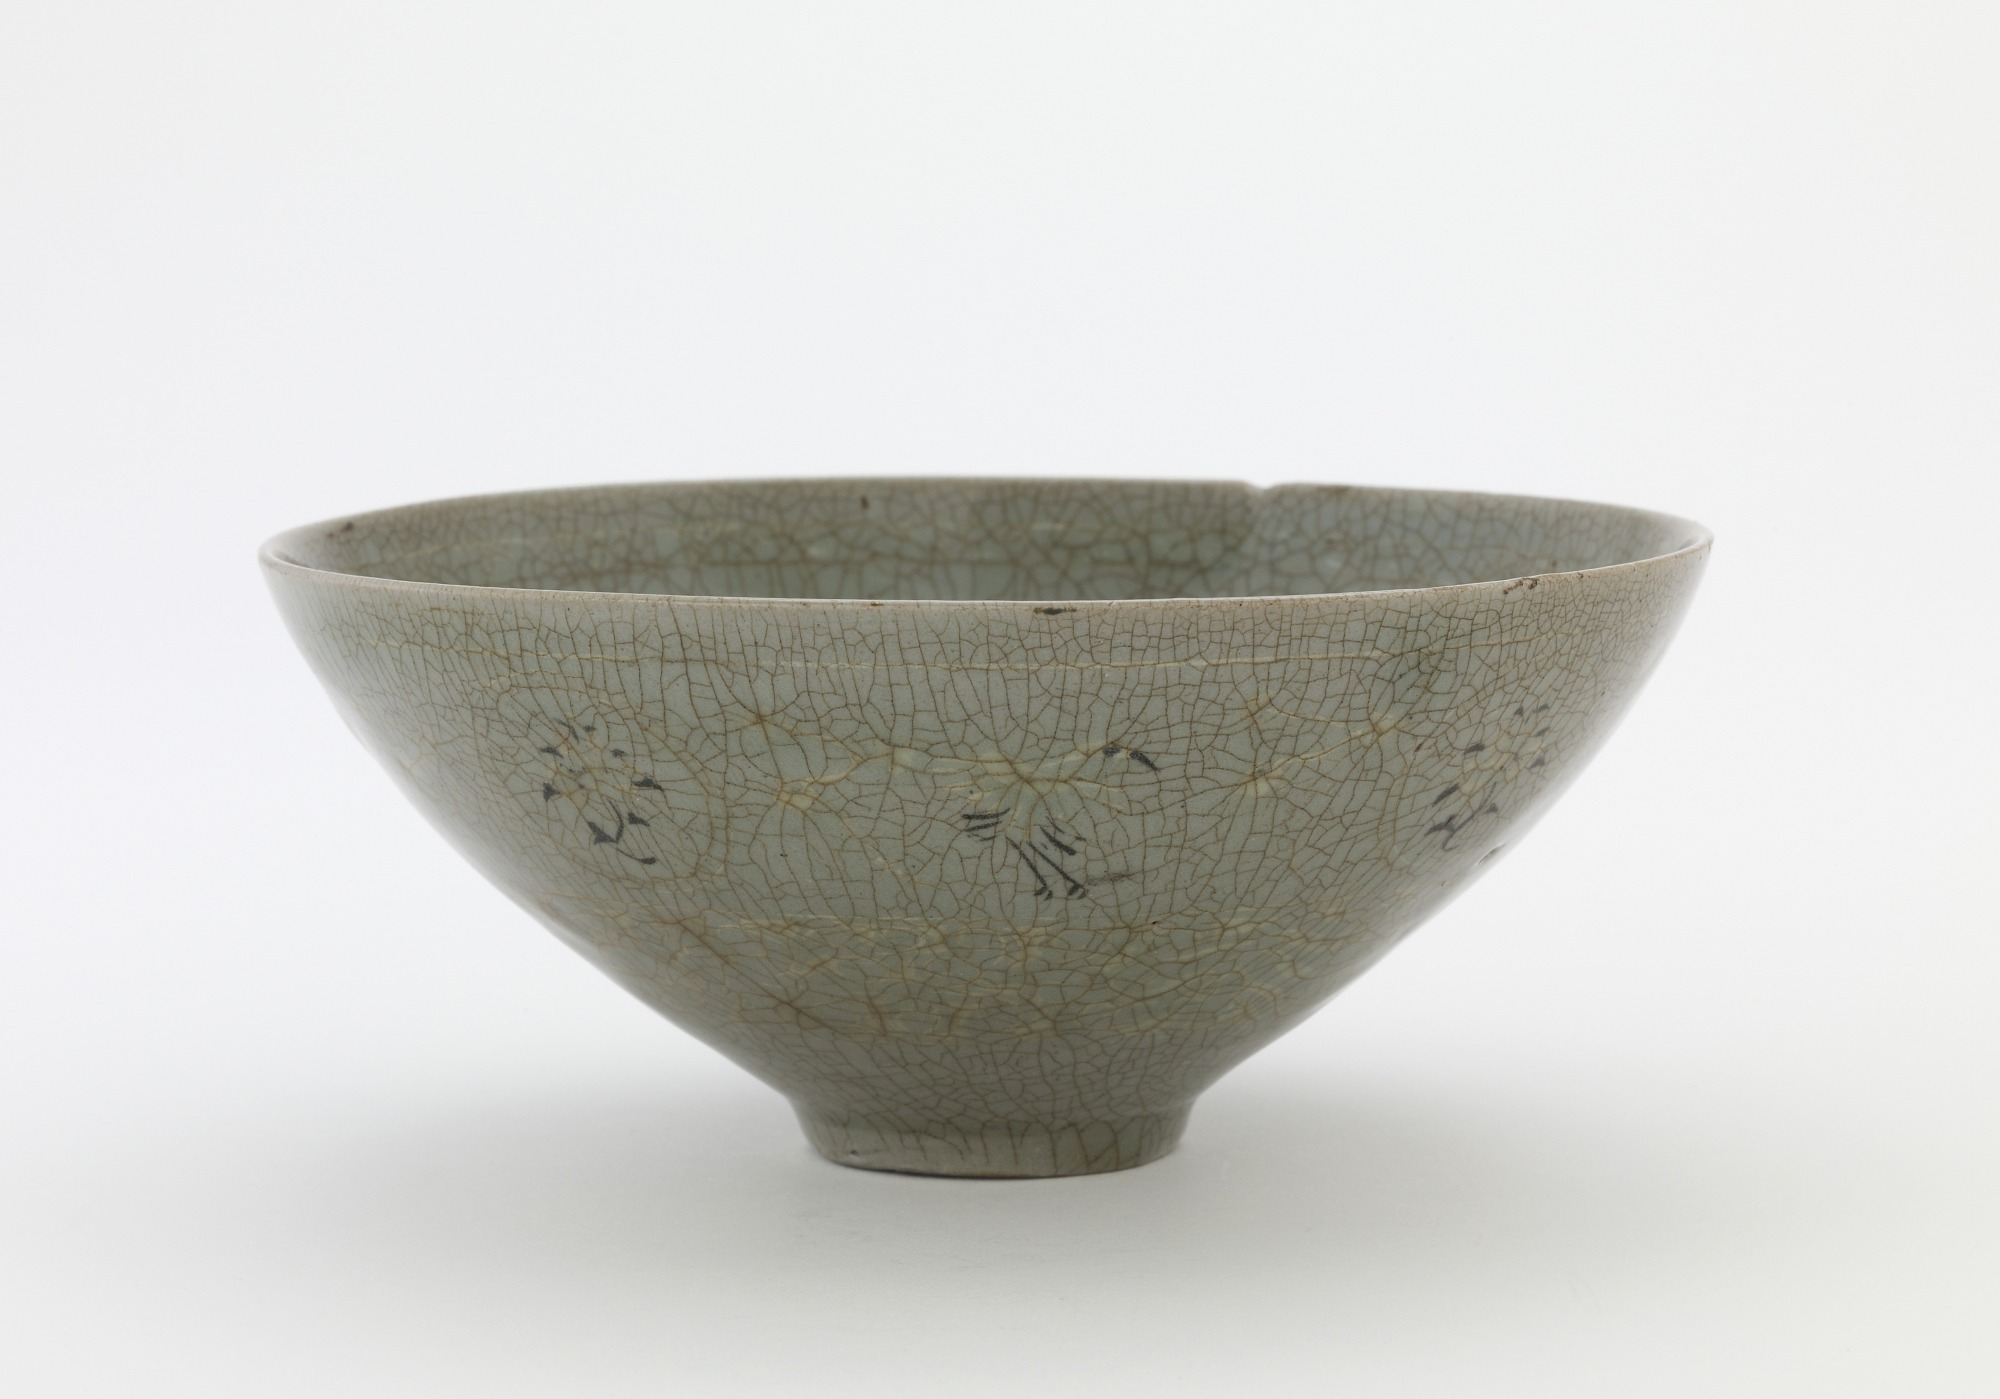 Tea bowl in style of Goryeo celadon, named Chasen-susugi, profile